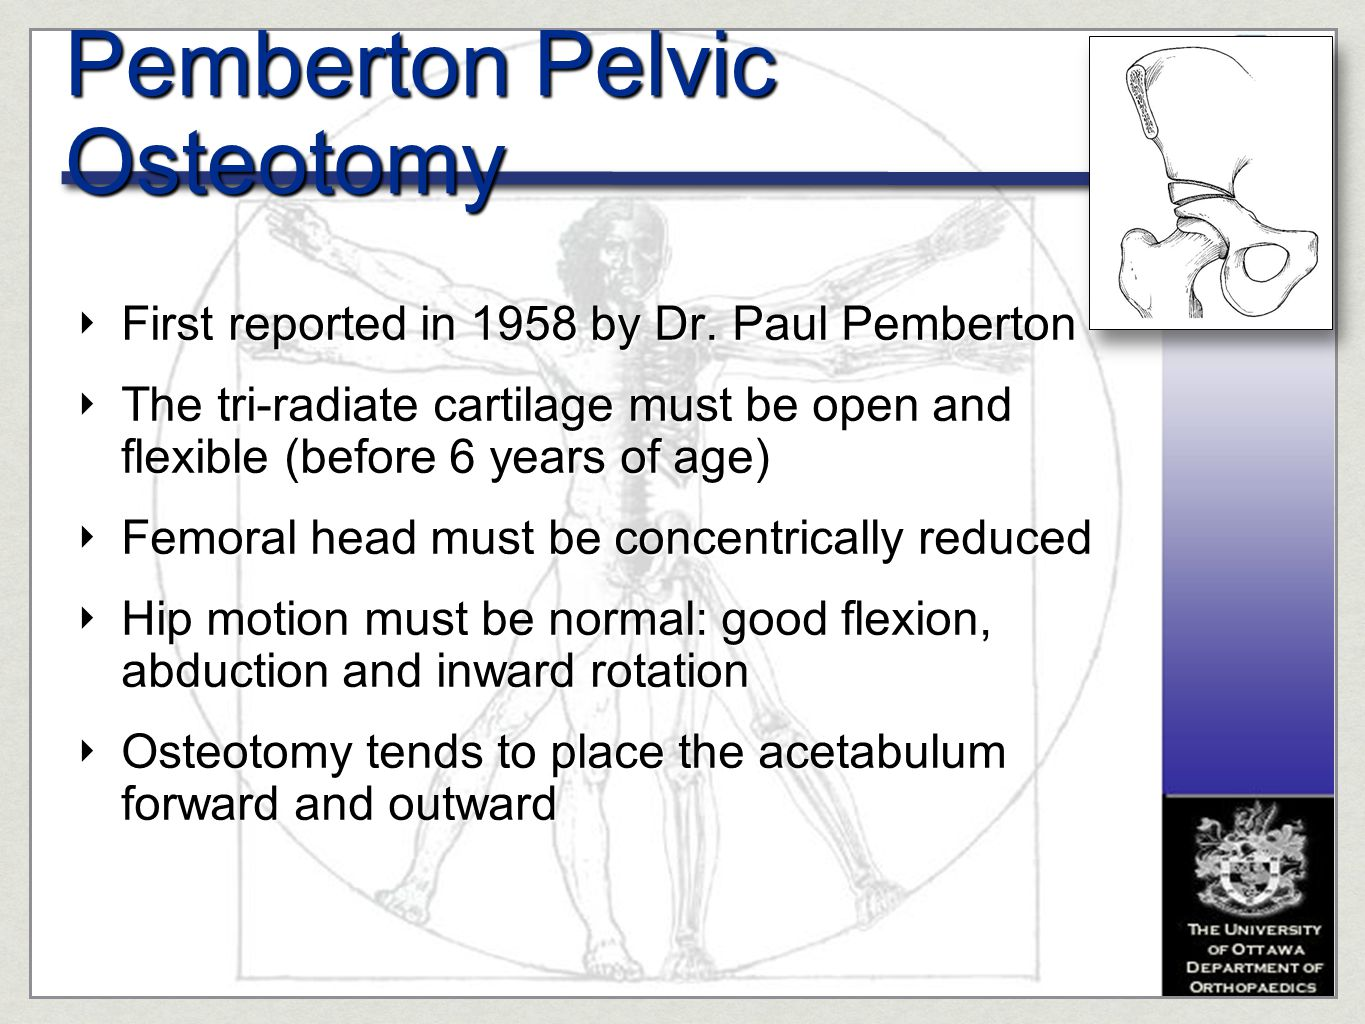 ‣ First reported in 1958 by Dr. Paul Pemberton ‣ The tri-radiate cartilage must be open and flexible (before 6 years of age) ‣ Femoral head must be co